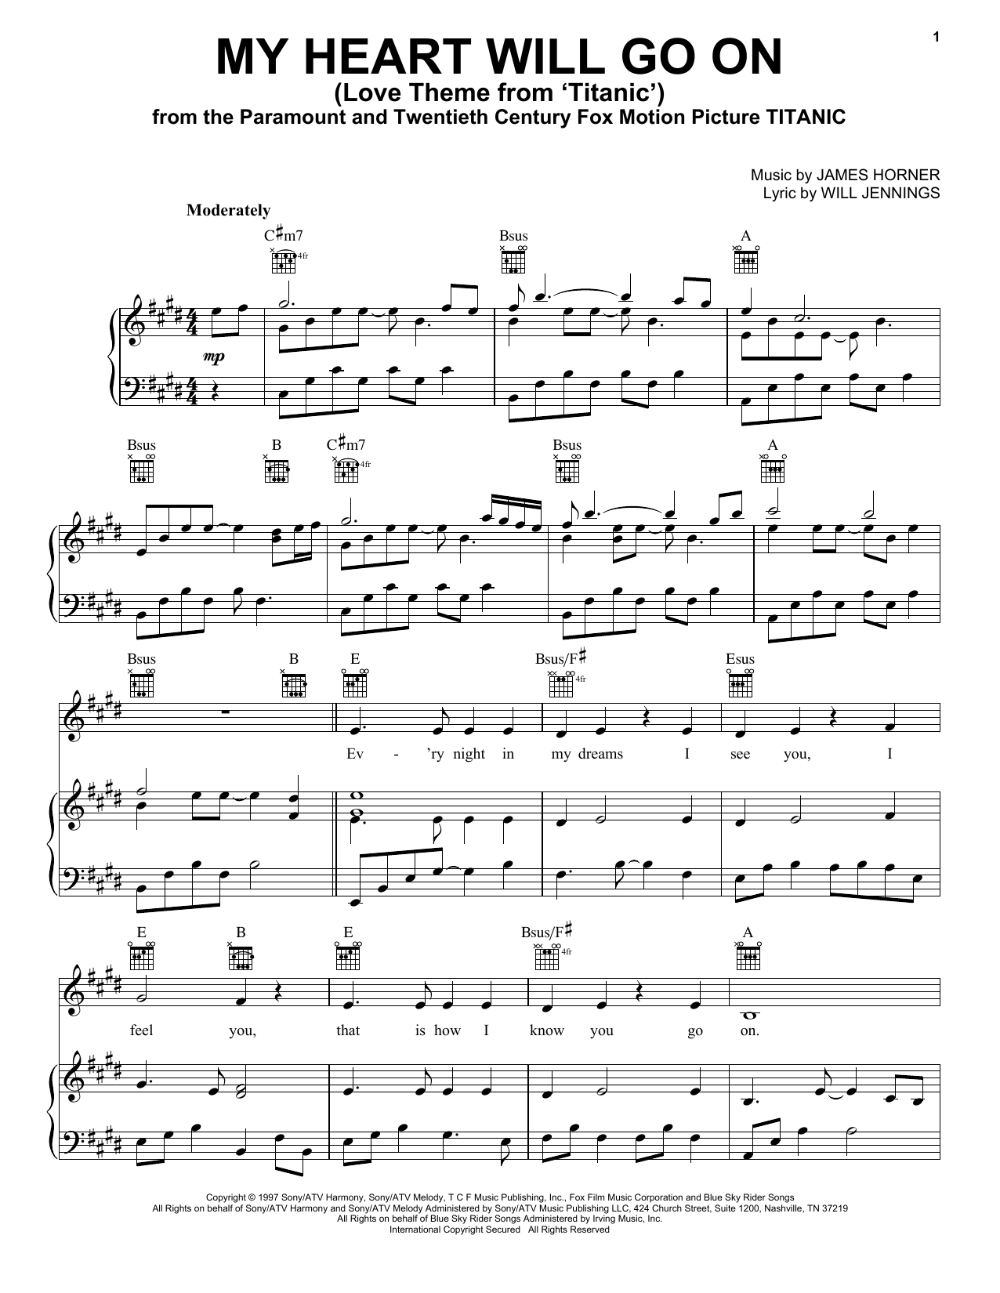 Celine Dion My Heart Will Go On Love Theme From Titanic Sheet Music Notes Chords Score Download Printable Pdf In 2020 Sheet Music Notes Hymn Sheet Music Sheet Music